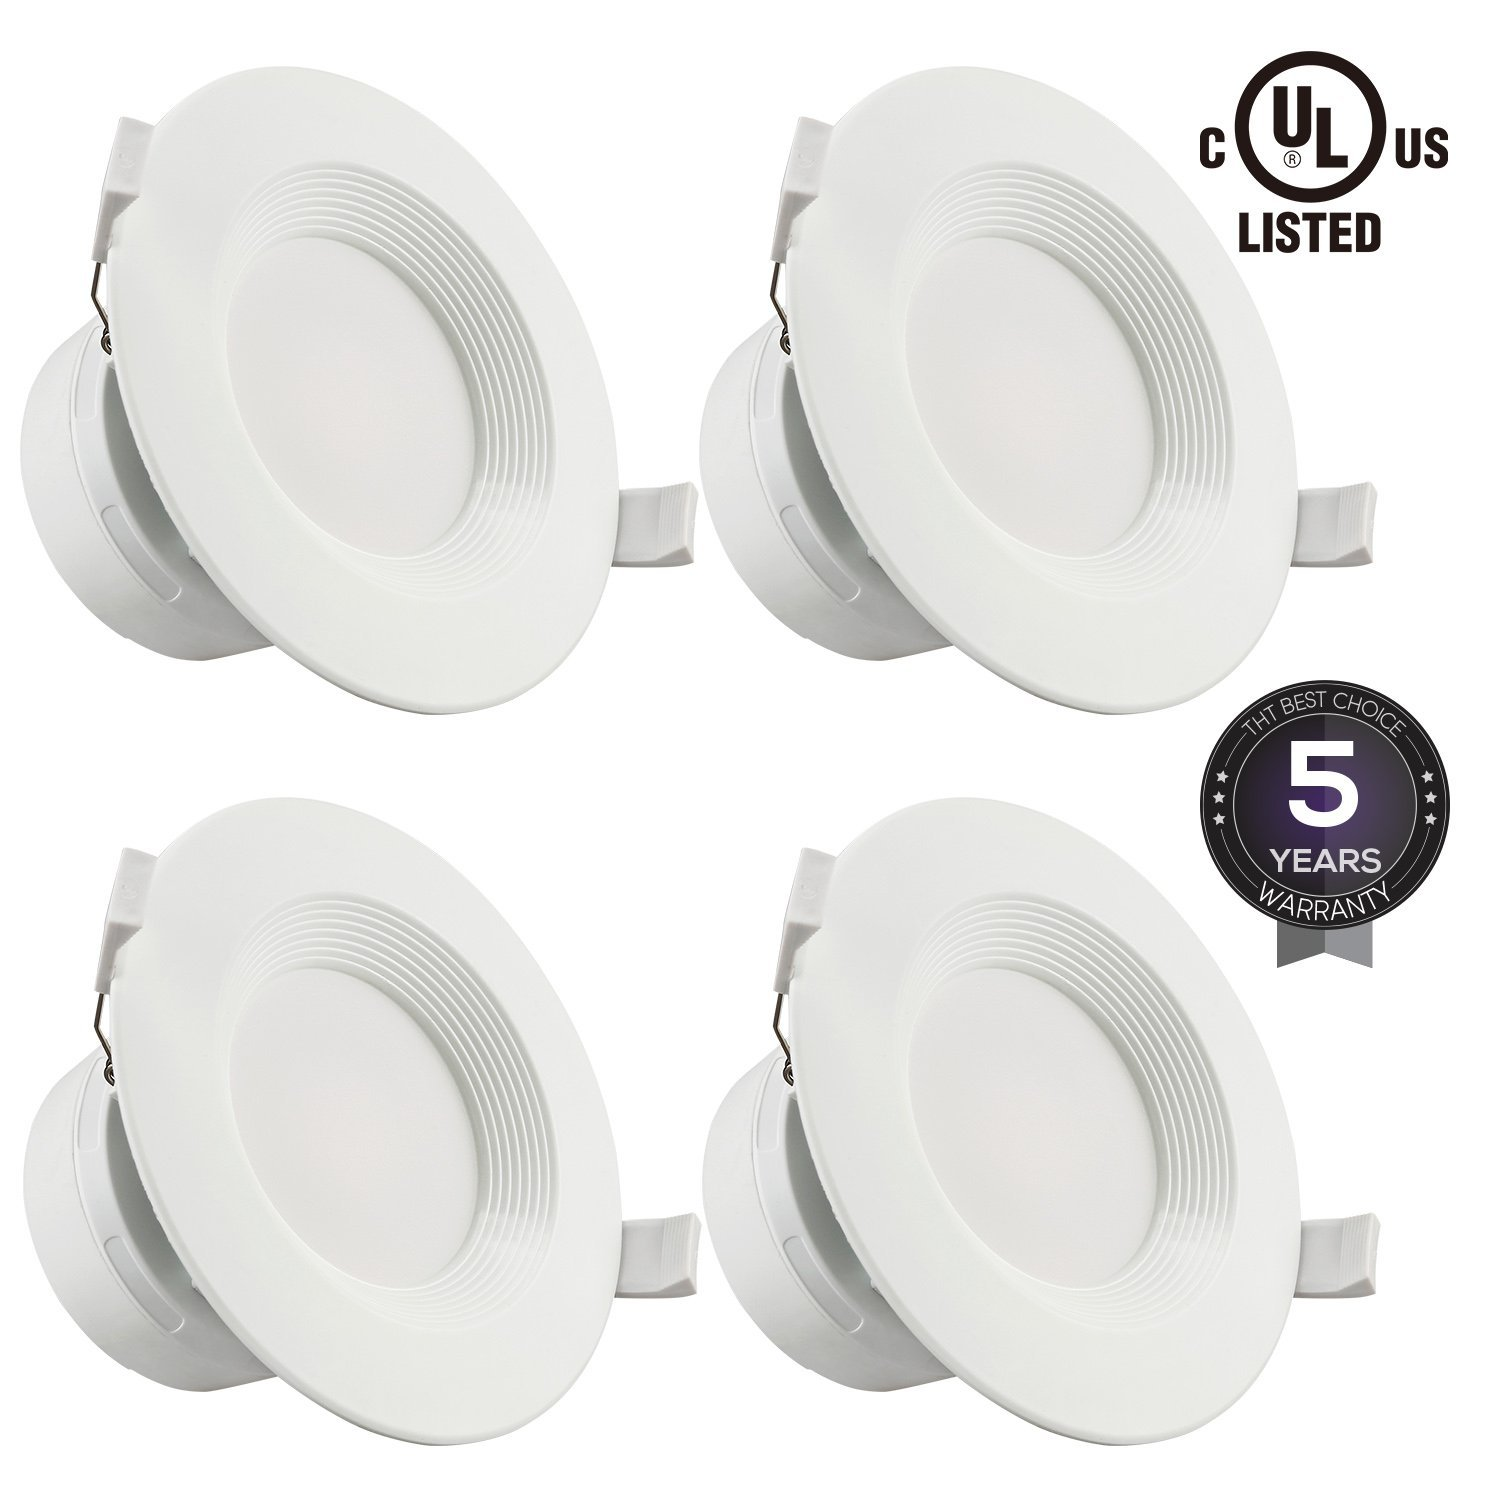 """4 PACK 4""""LED Recessed Downlight with Junction Box, 7W (60W Equivalent) Dimmable LED Ceiling Light Fixture, IC-Rated & Air Tight, Wet Location, 2700K Soft White, UL-listed, 5 Years Warranty"""